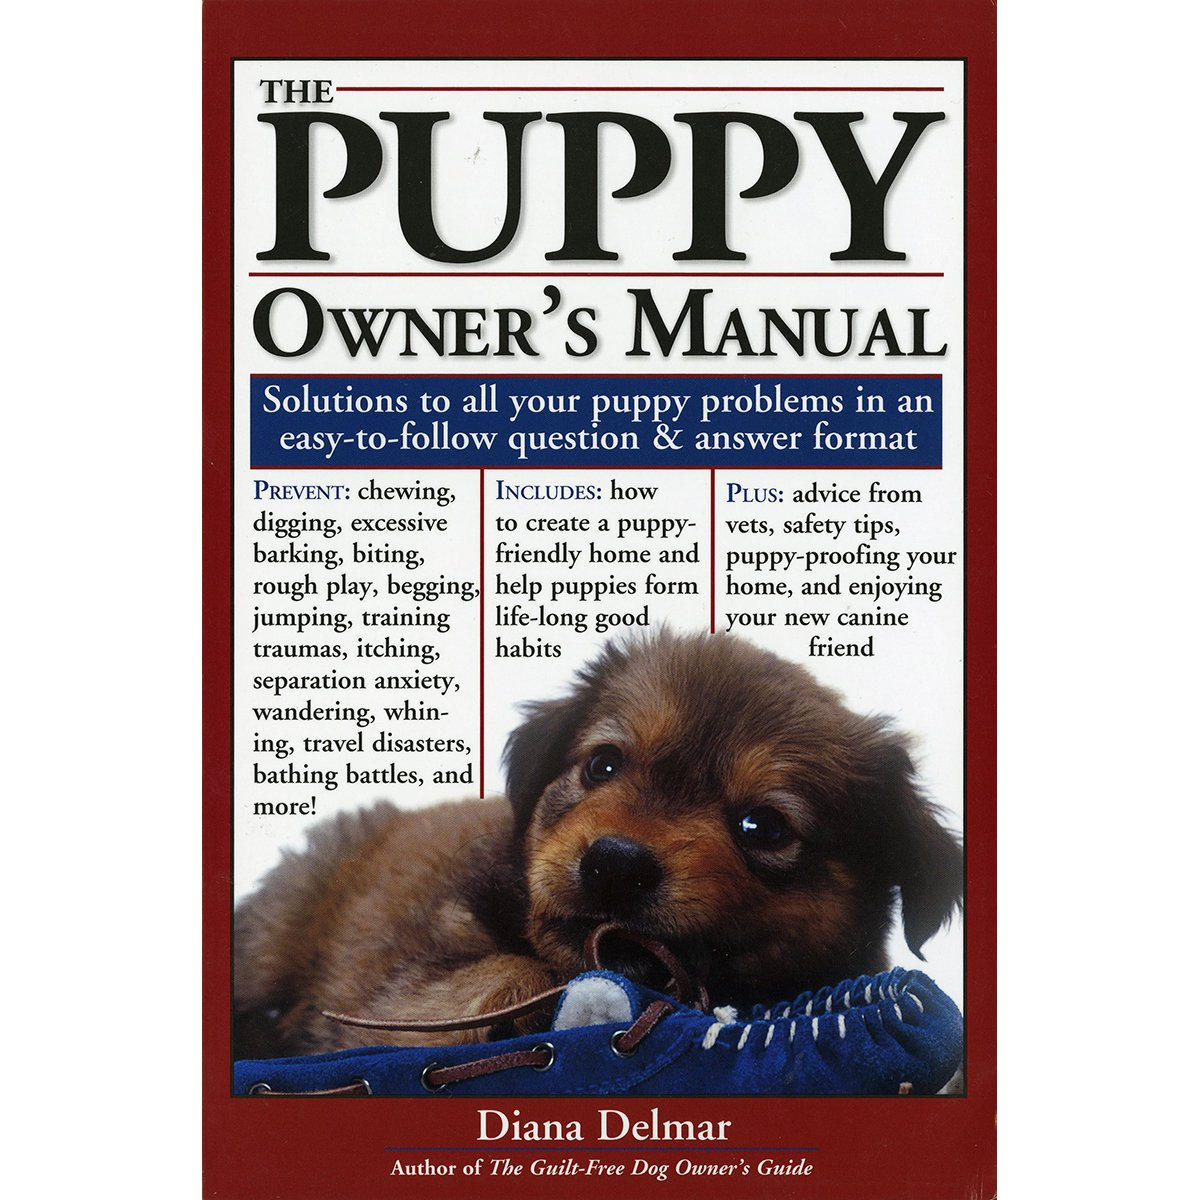 The Puppy Owner's Manual: Solutions to all your Puppy Quandaries in an easy-to-follow question and answer format ebook